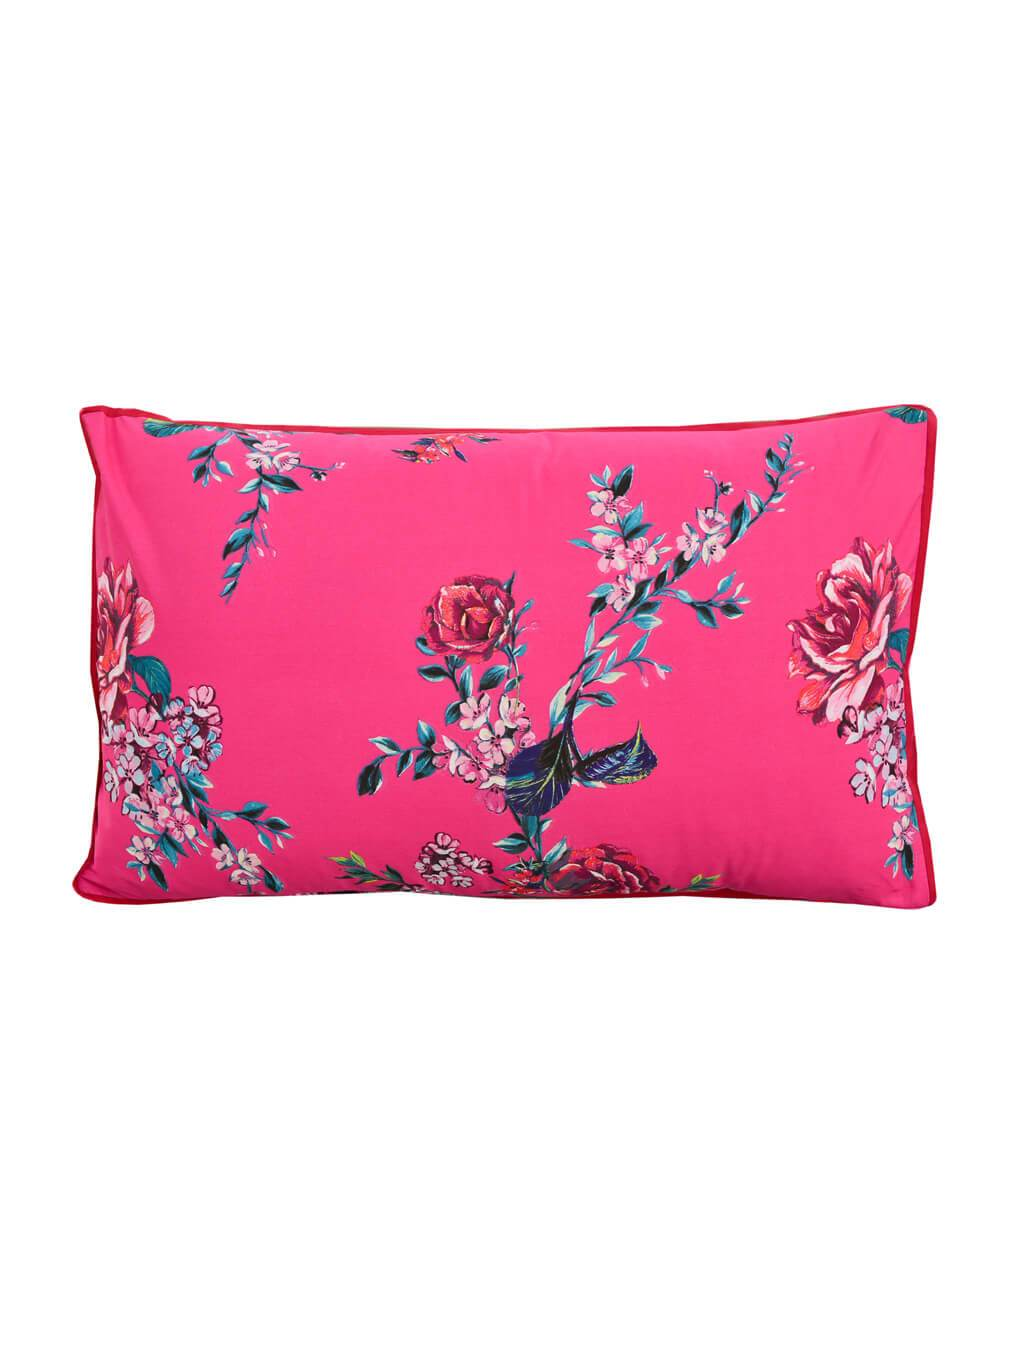 Pop Flower Pillow Cover PRINTED RANGE 180 TC HOMBEDCLU